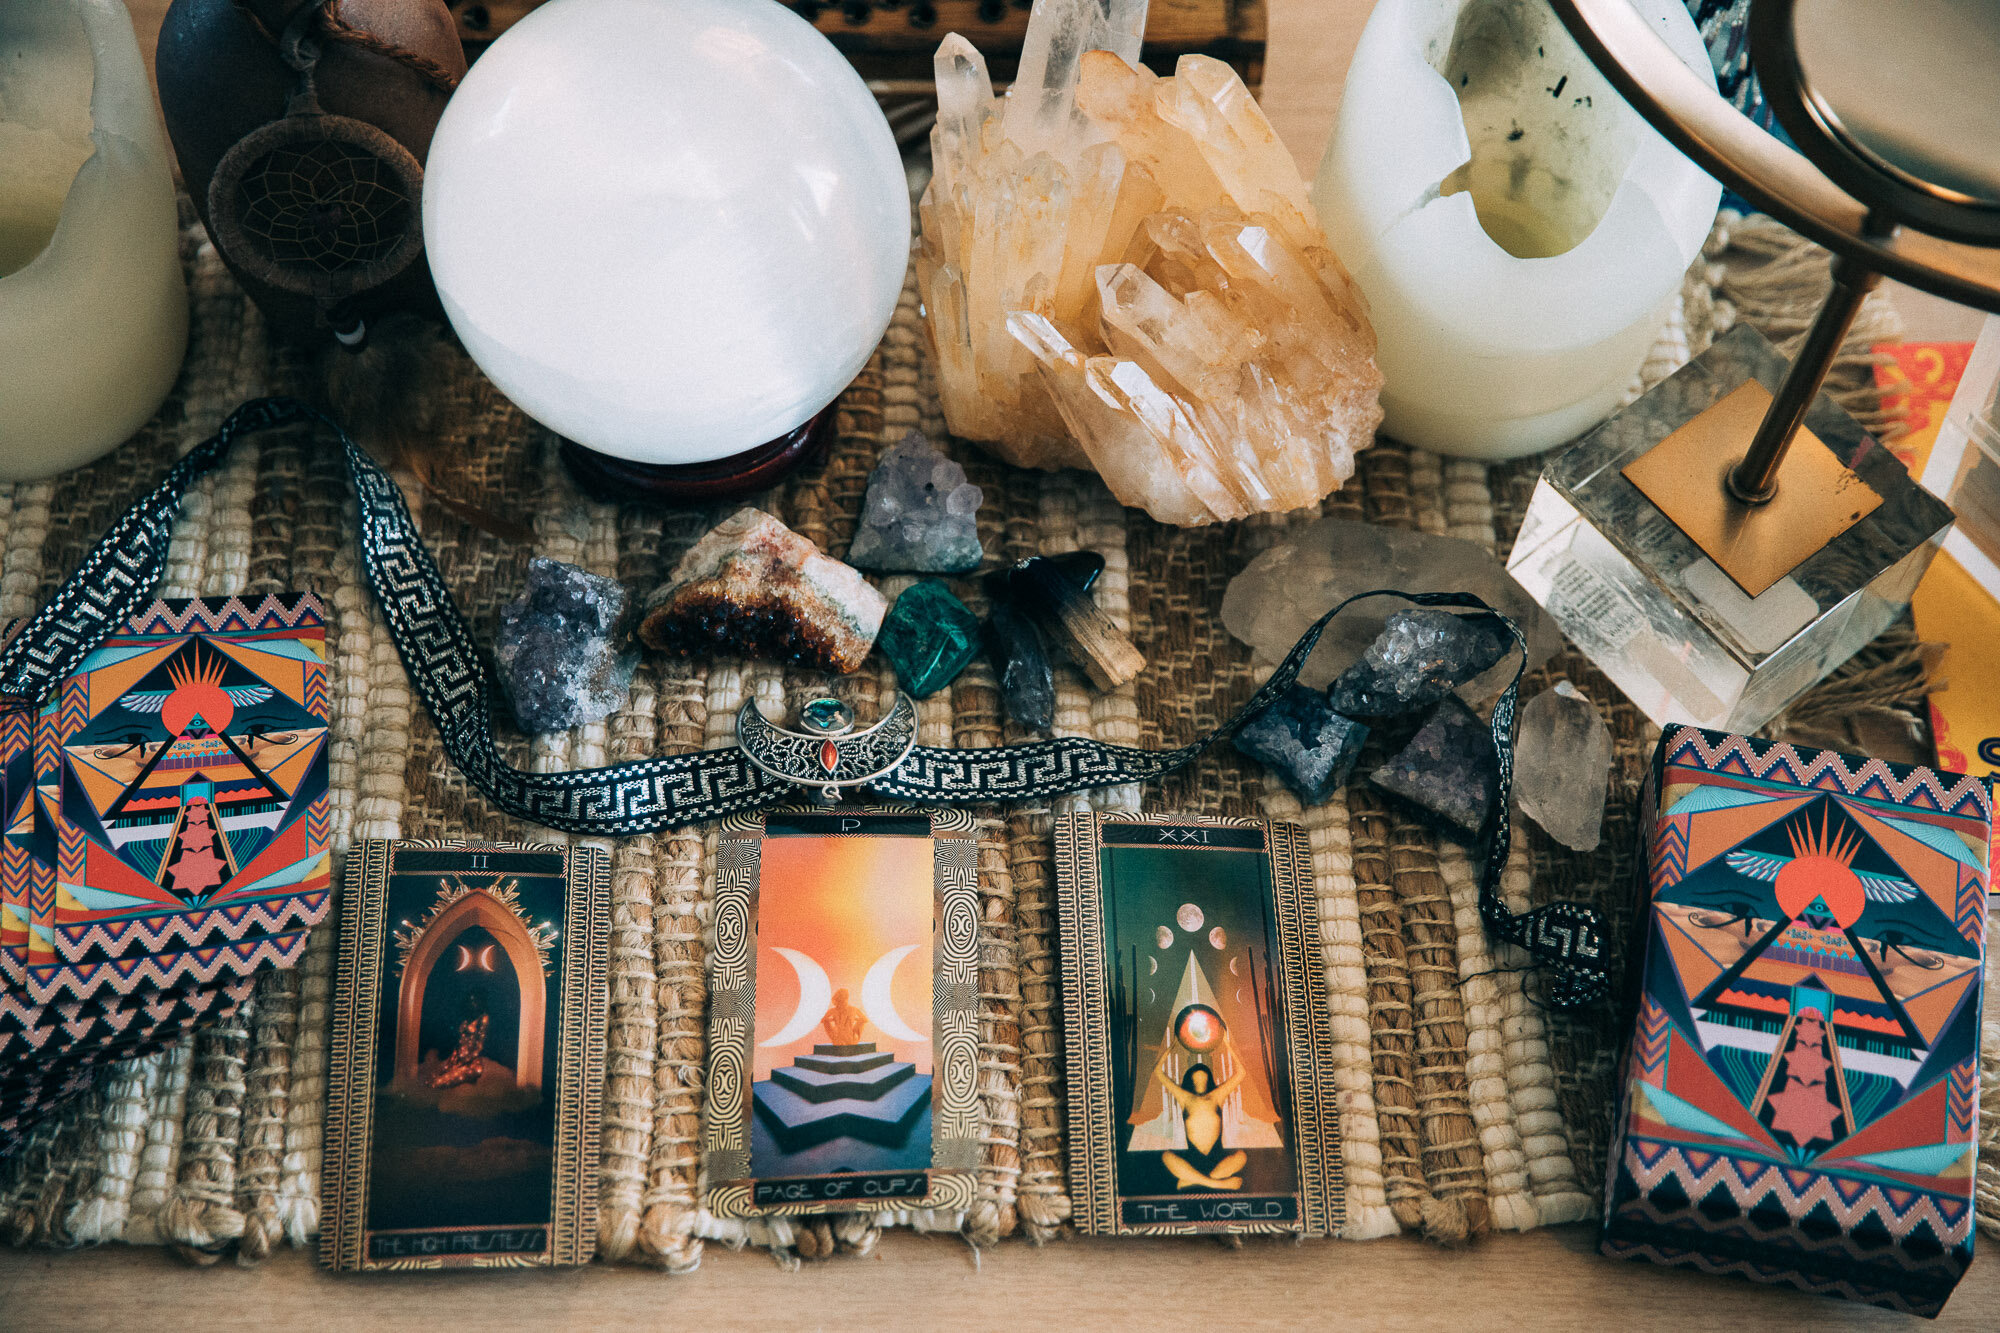 Tarot cards and stones